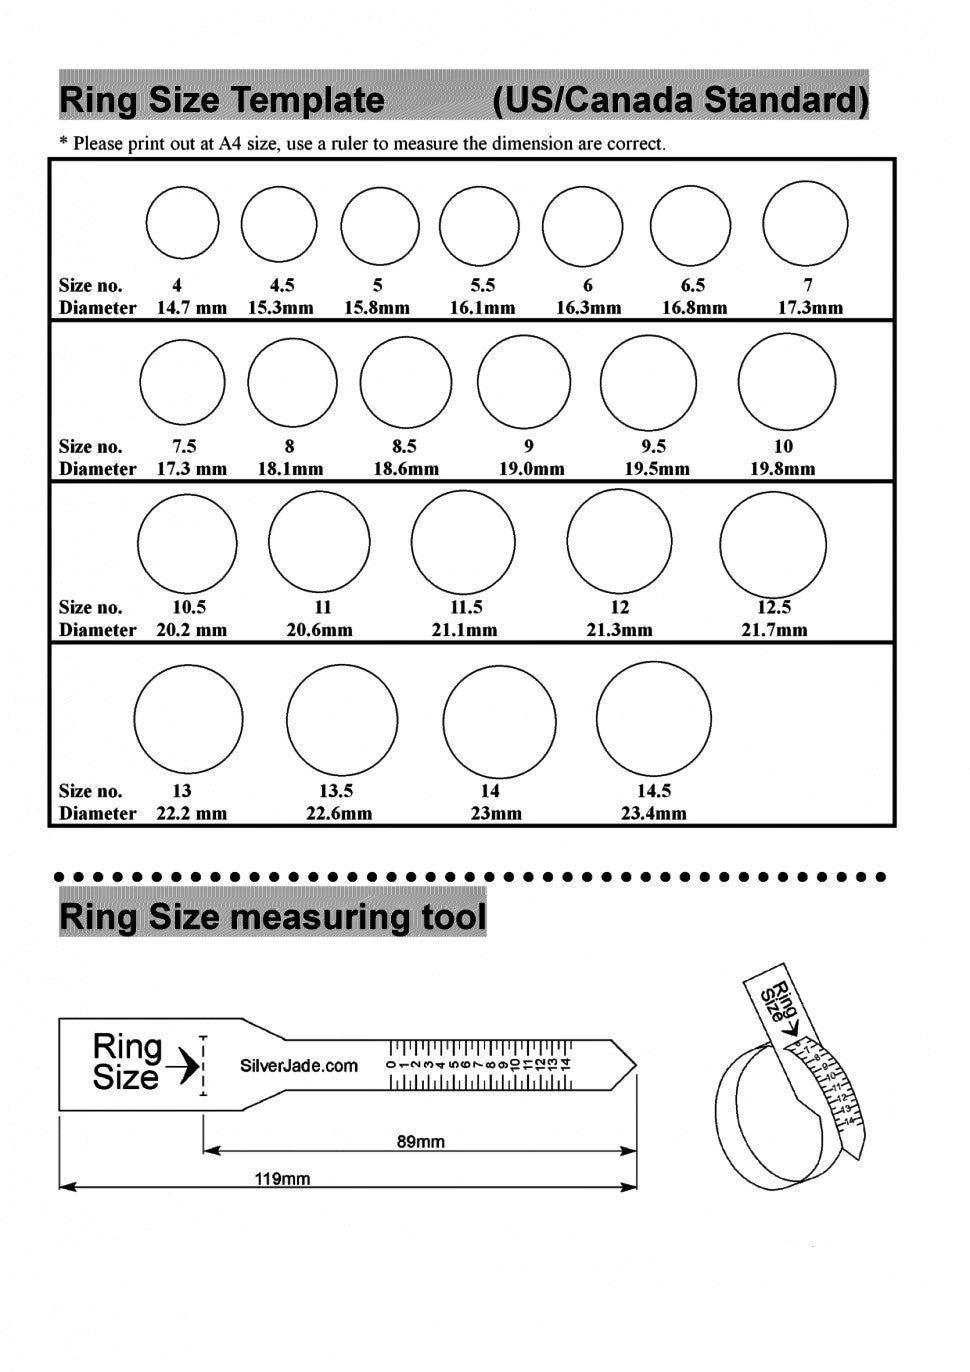 Free ring size chart choice image free any chart examples ring size chart online ruler choice image free any chart examples ring size chart online ruler nvjuhfo Choice Image